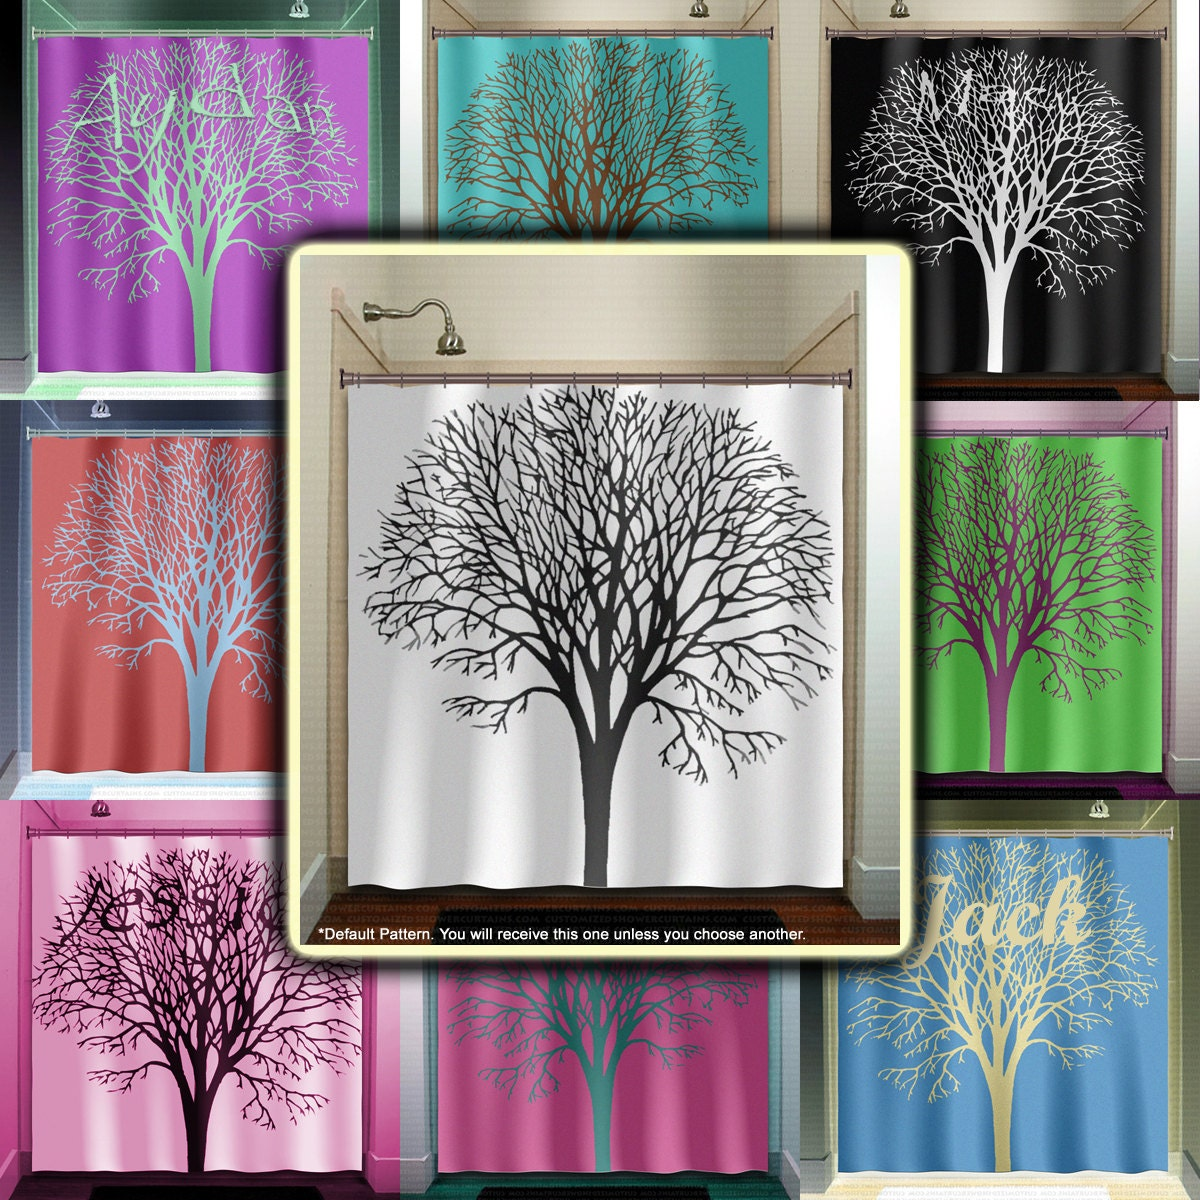 personalized name oak tree shower curtain bathroom decor fabric kids bath  window curtains panels valance bathmat - Personalized Name Oak Tree Shower Curtain Bathroom Decor